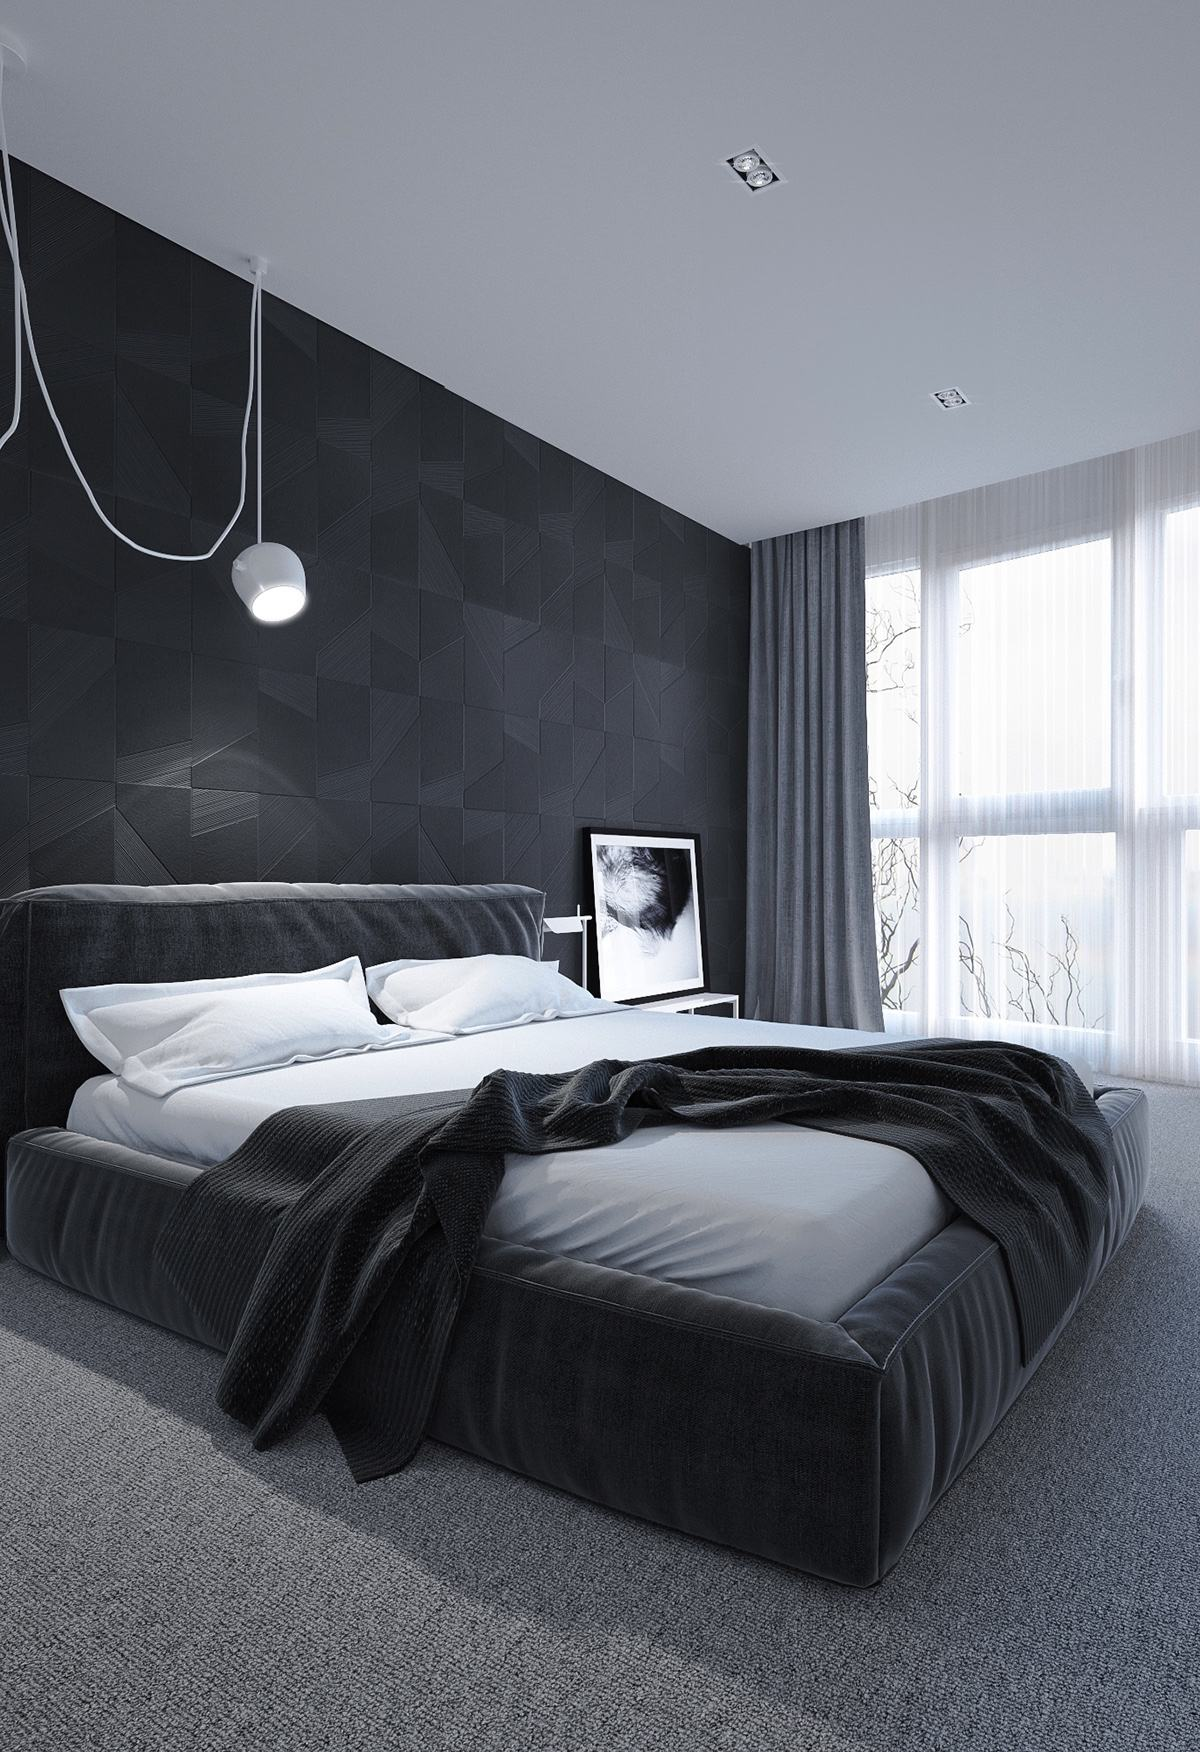 How To Bring Inspiration Into Your Dreams With Dark Bedroom Master Bedroom Ideas